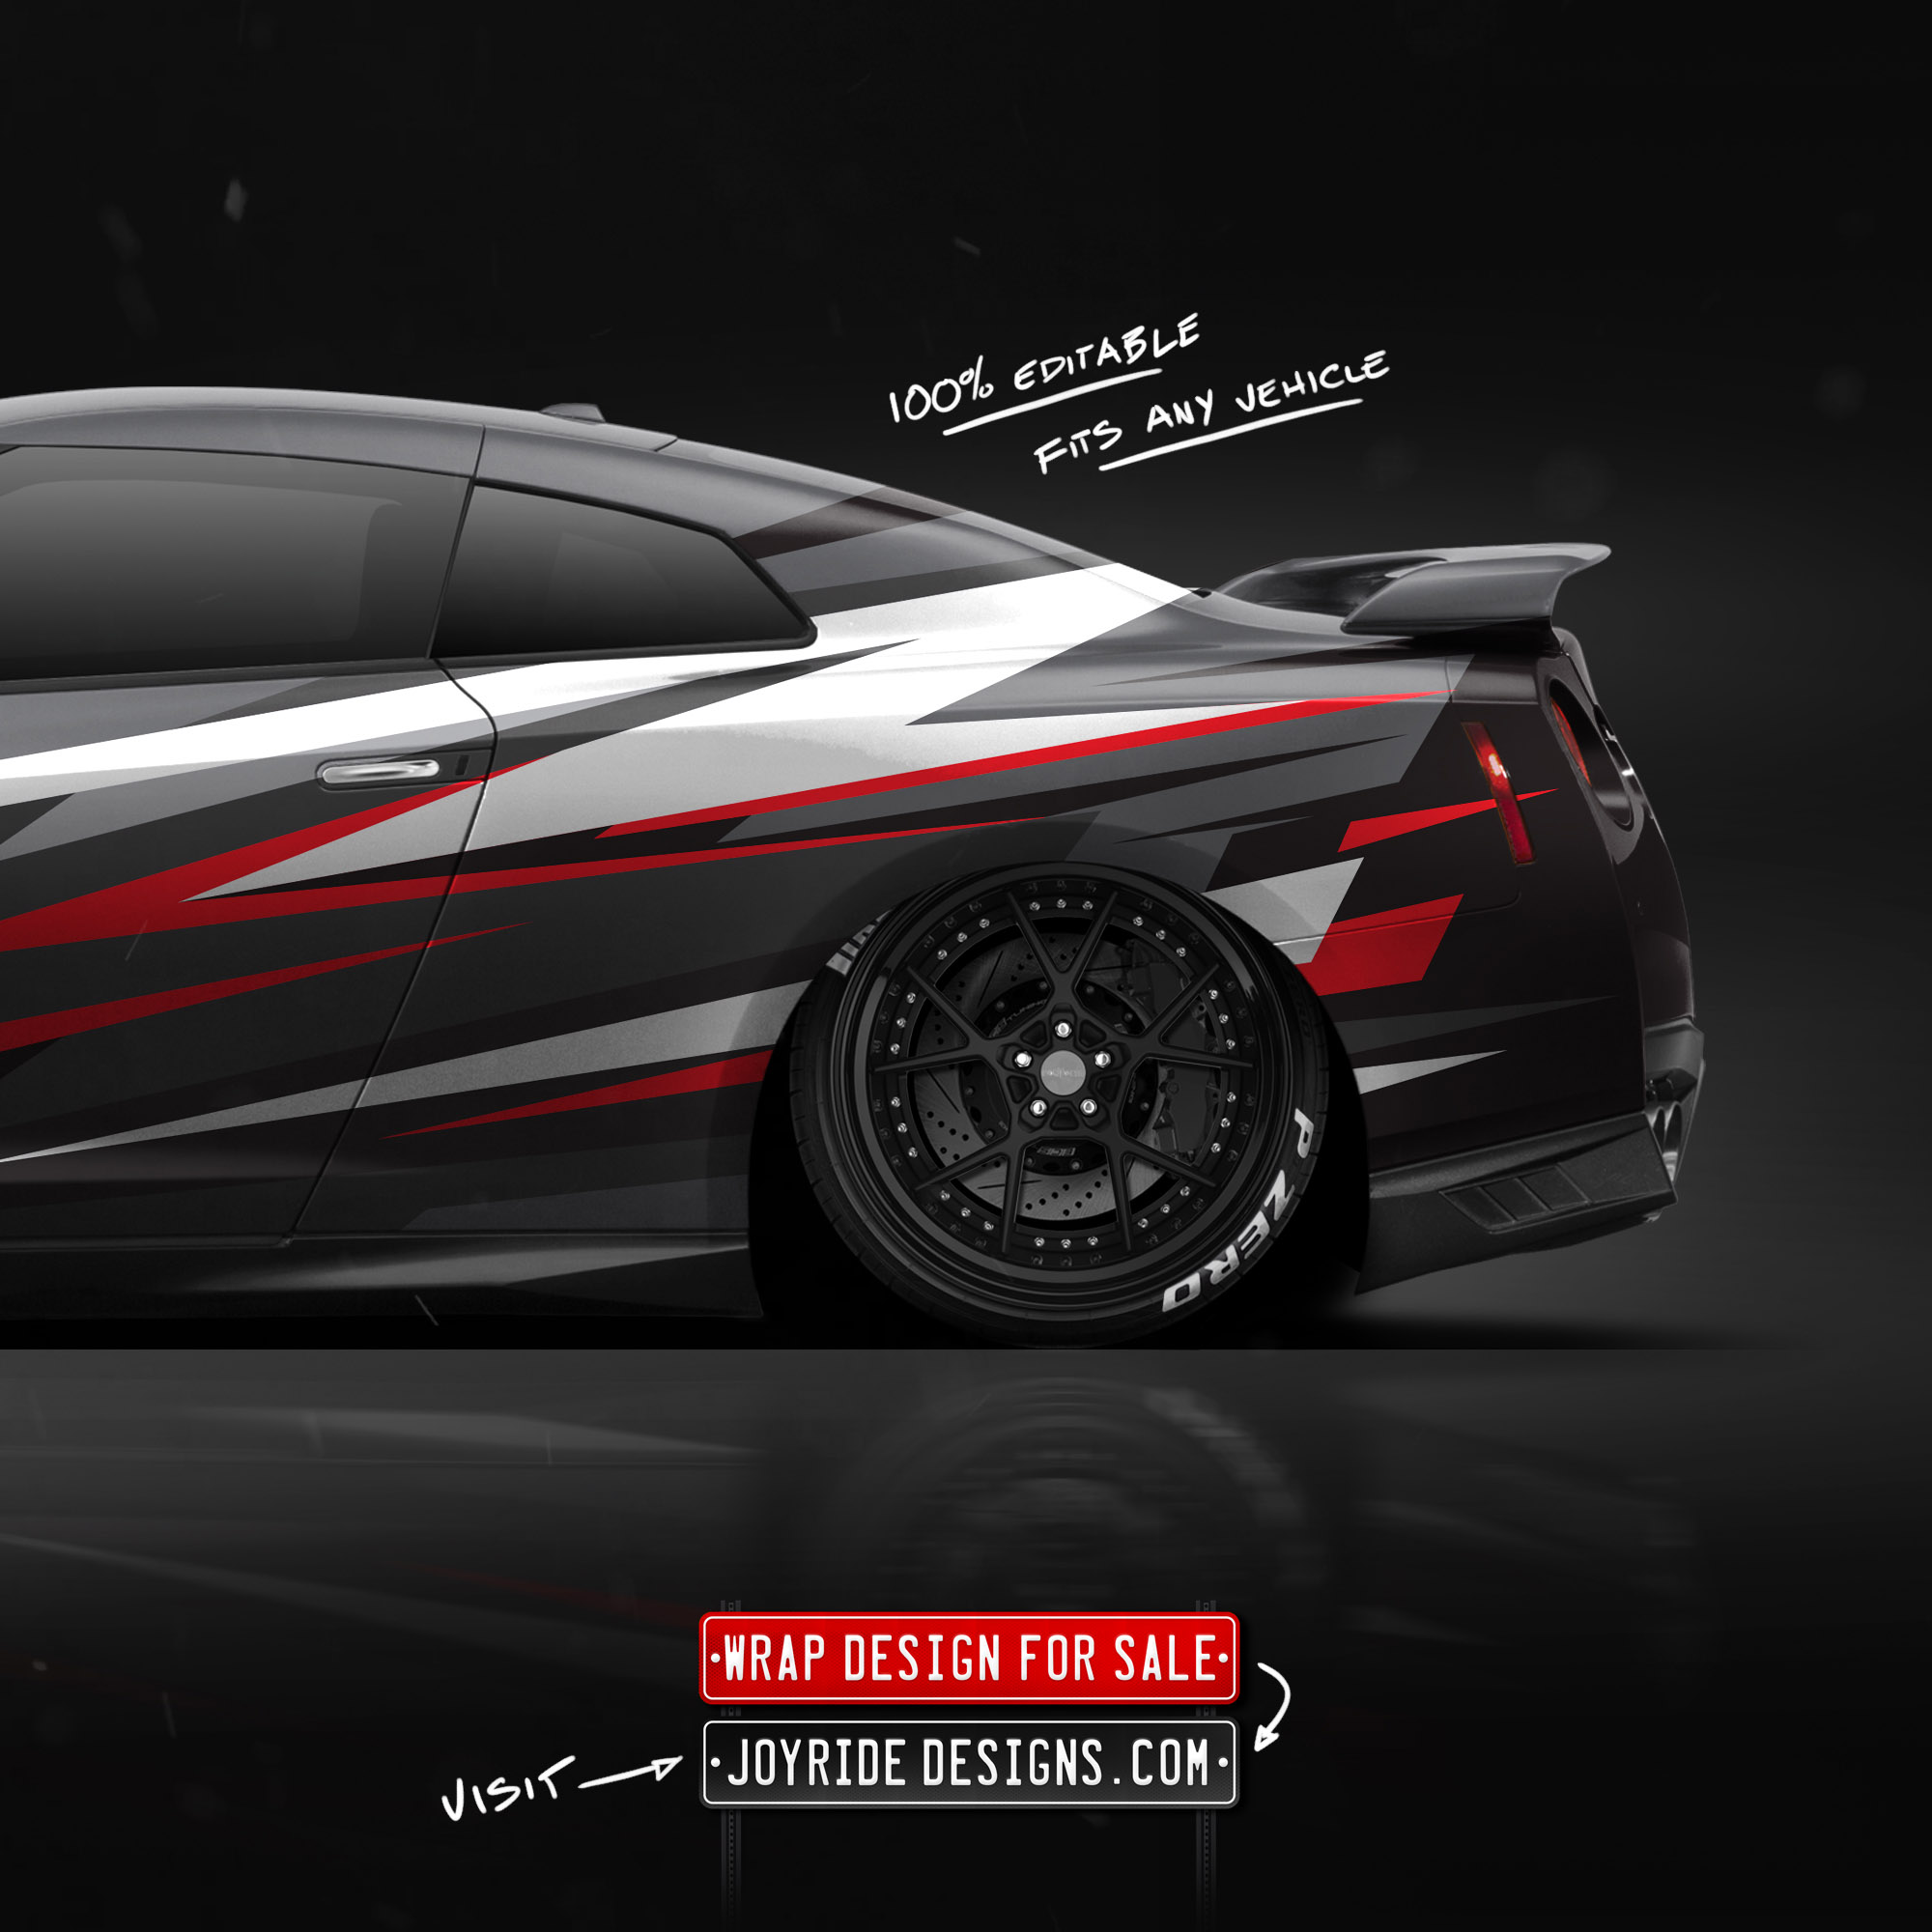 NISSAN GTR BACK SIDE JOYRIDE WRAP DESIGN JD4